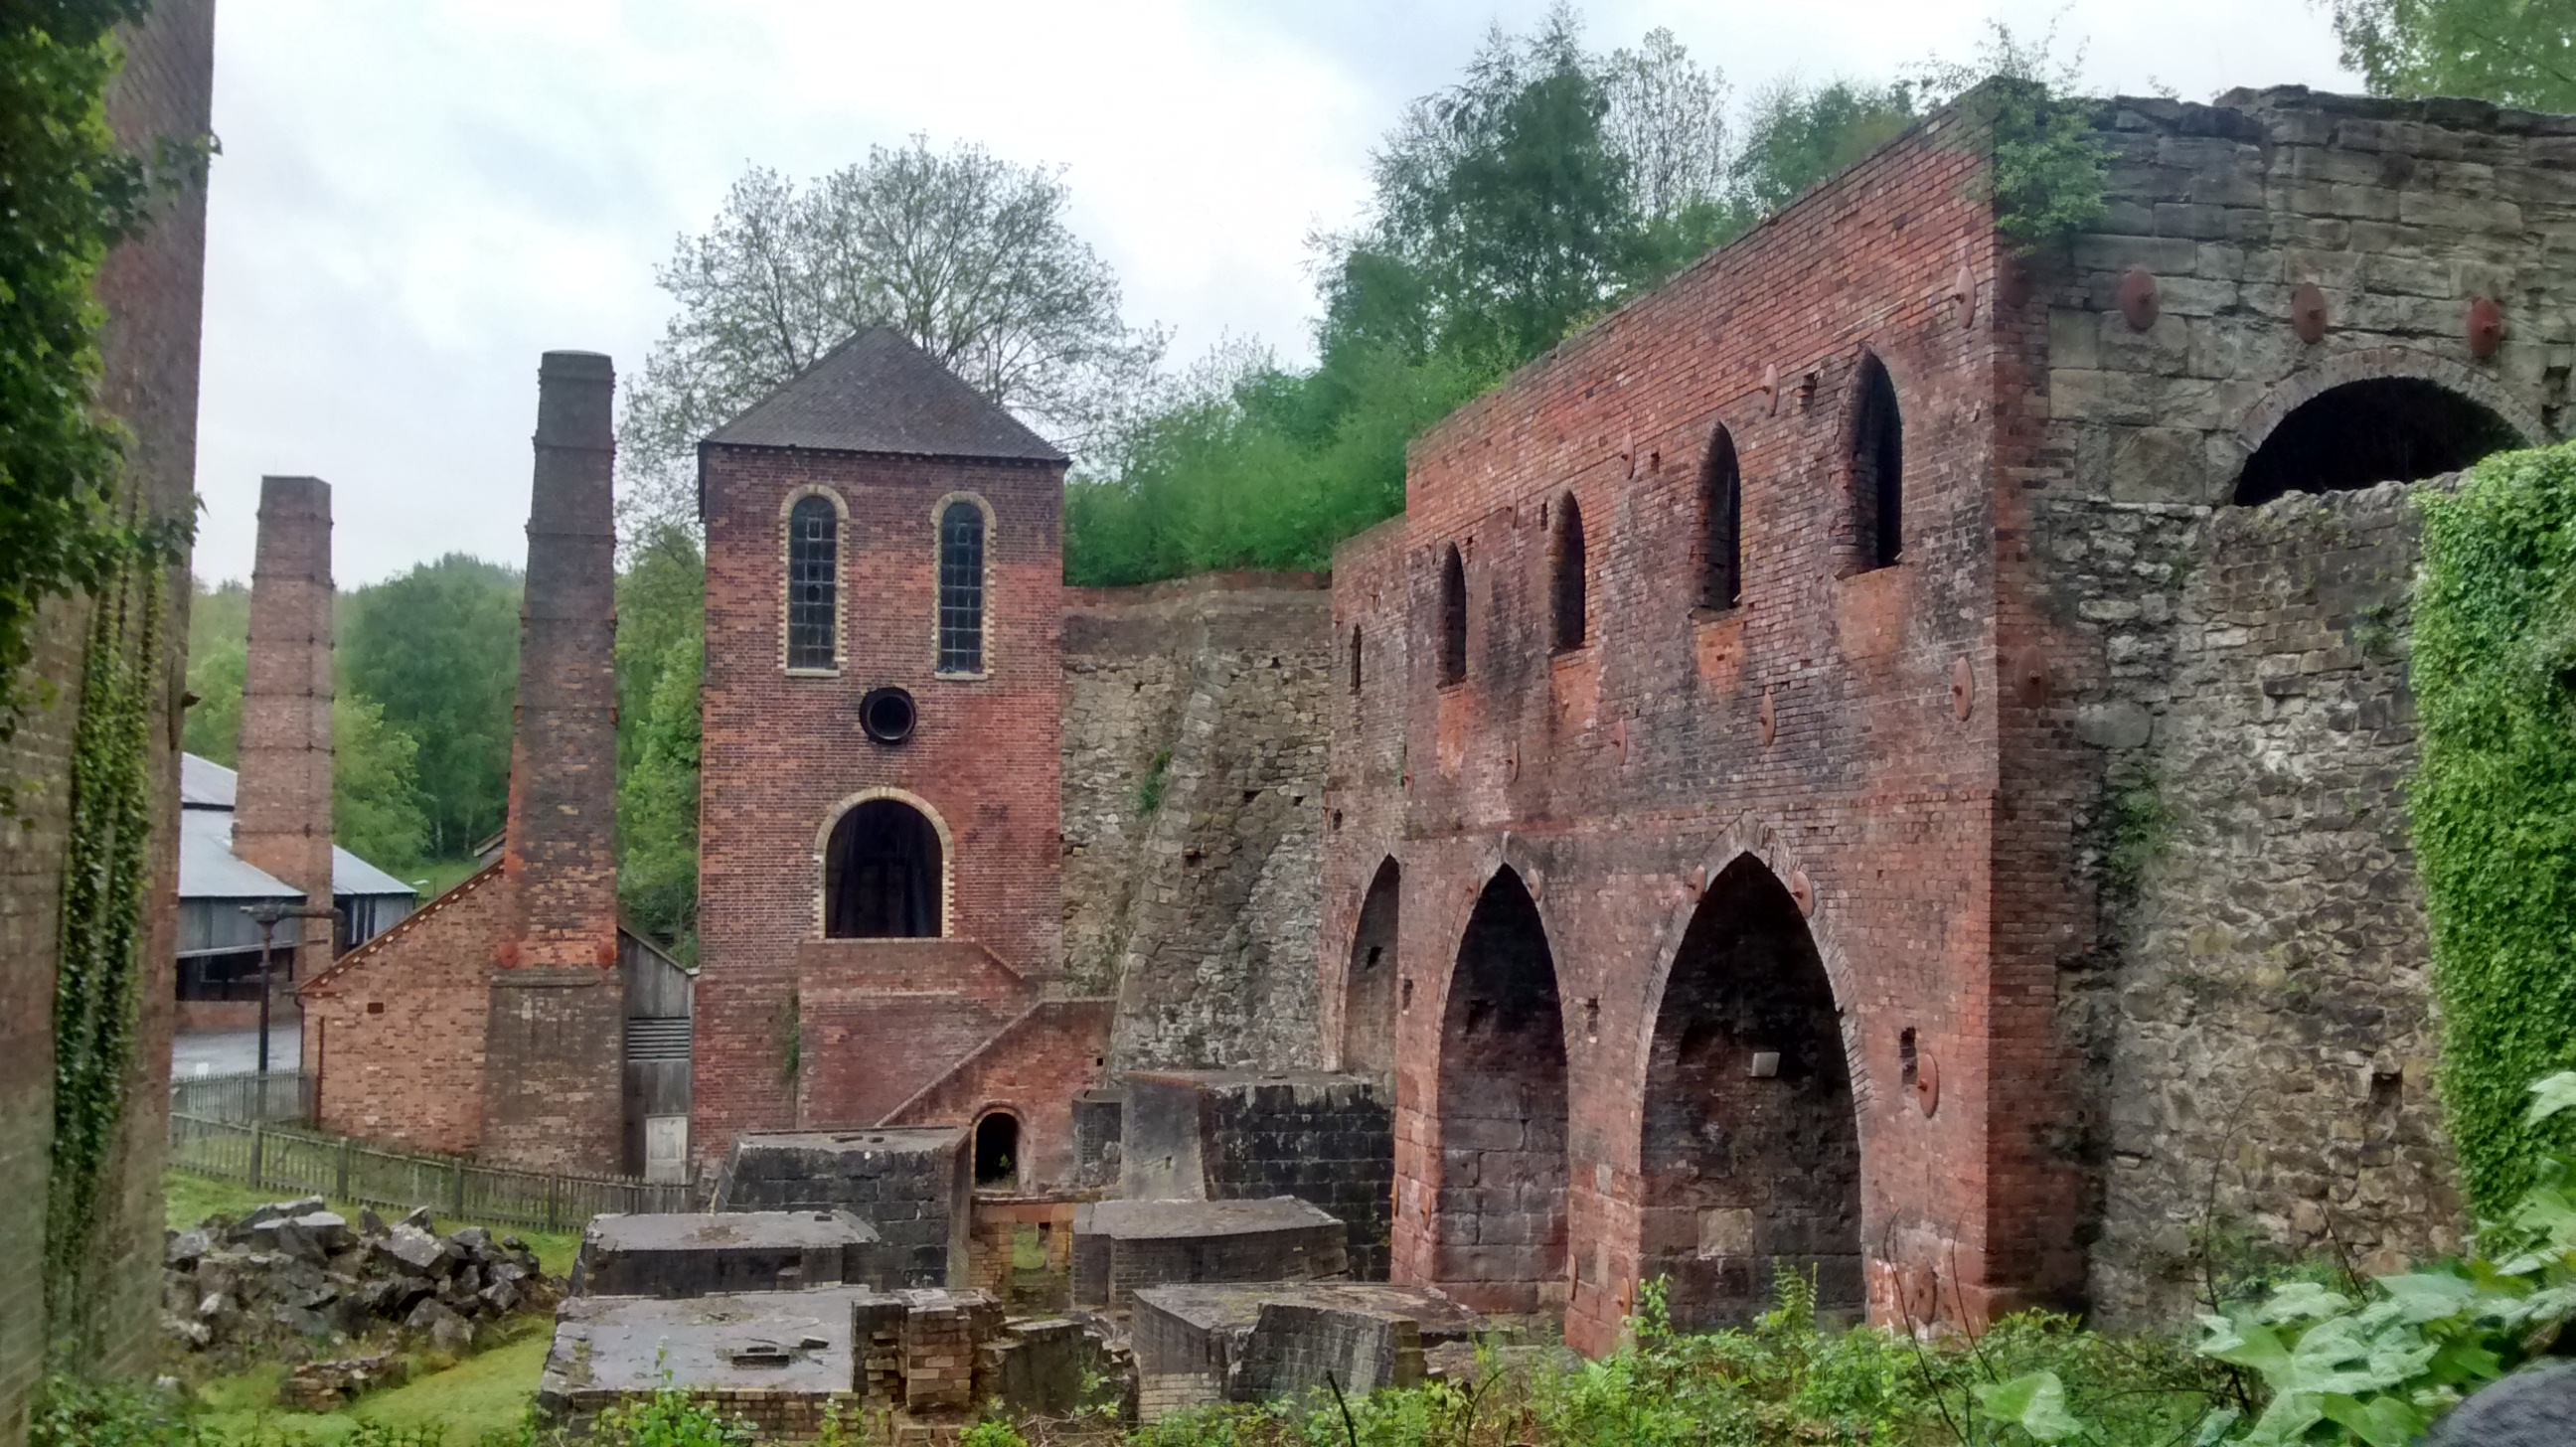 Relics of the industrial revolution